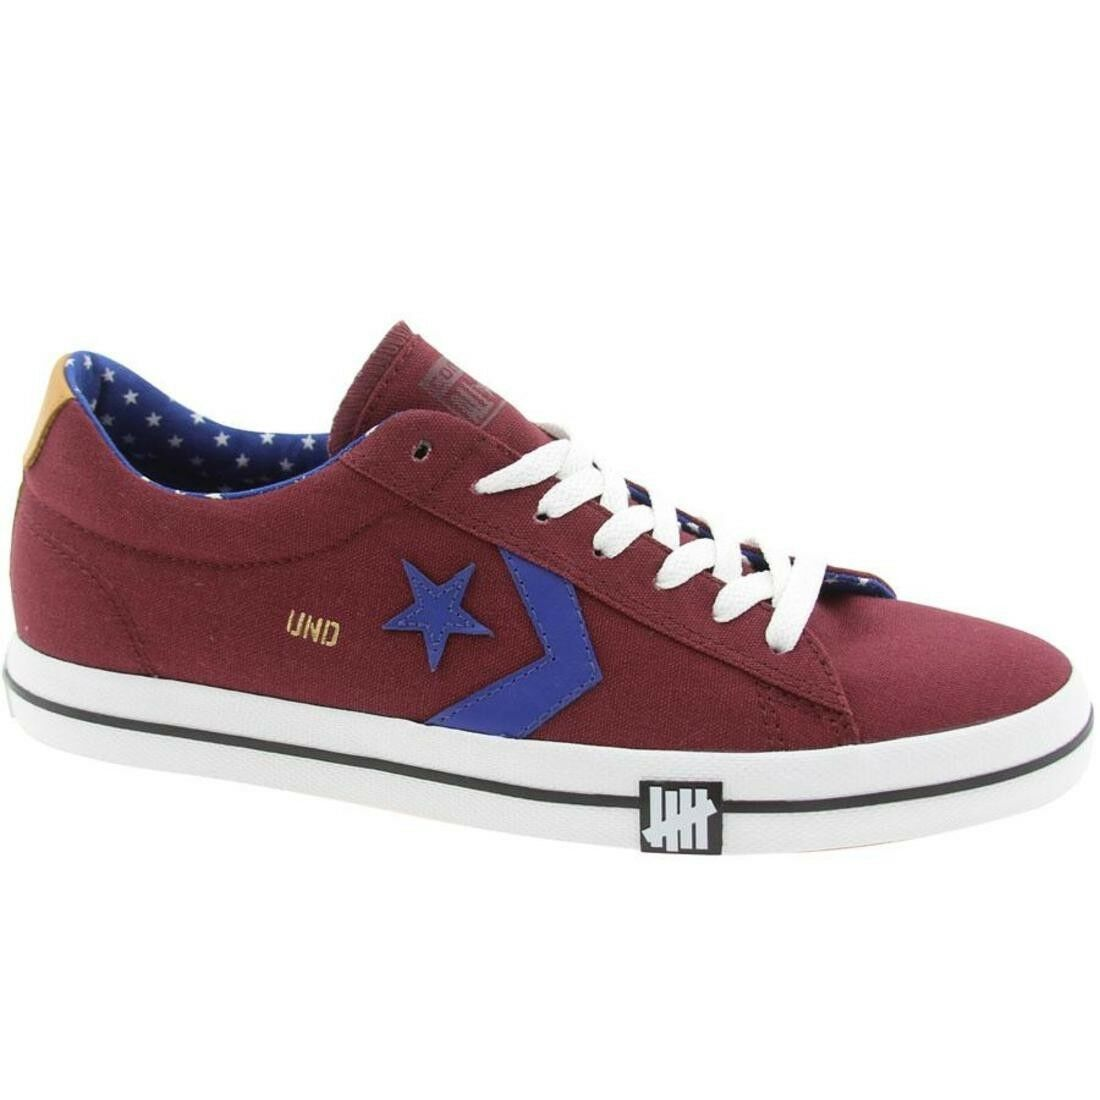 Converse x Undefeated UNDFTD Homme Pro Vulc Ox Leather All Star limited edition